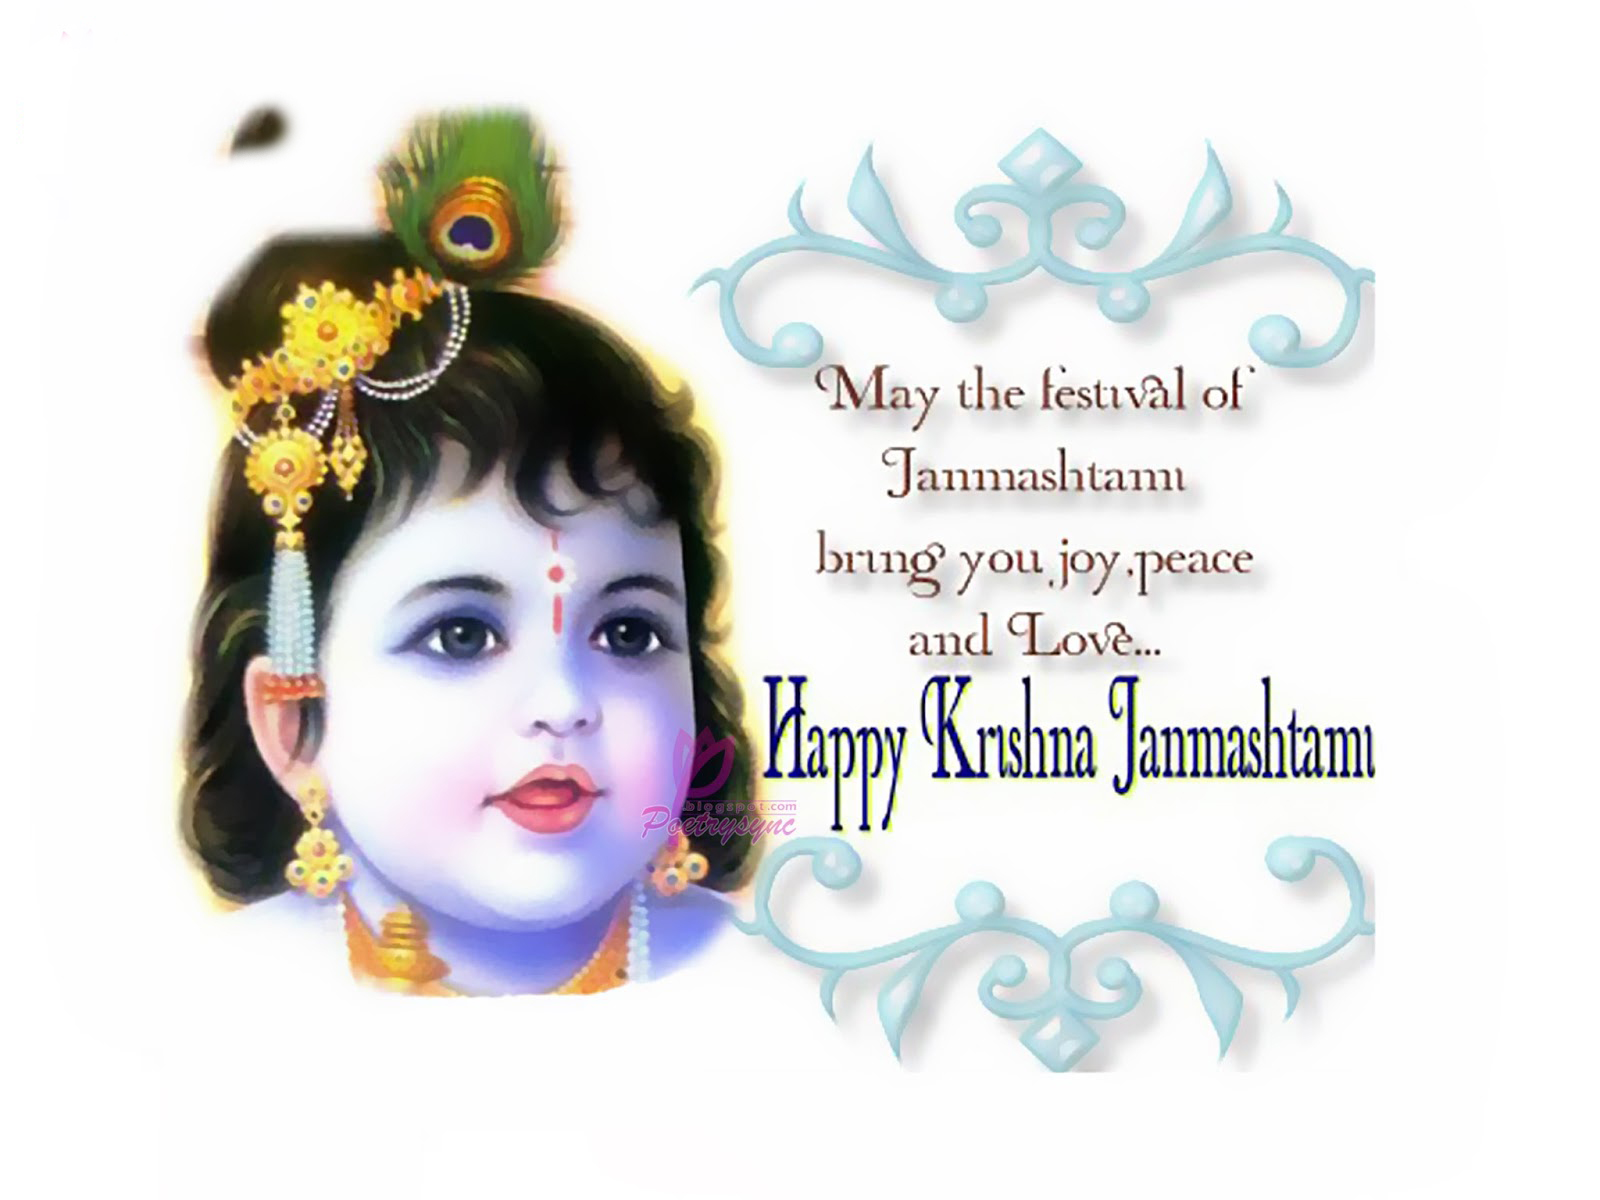 Happy Krishna Janmashtami 2016 Greetings Wishes Video for WhatsApp